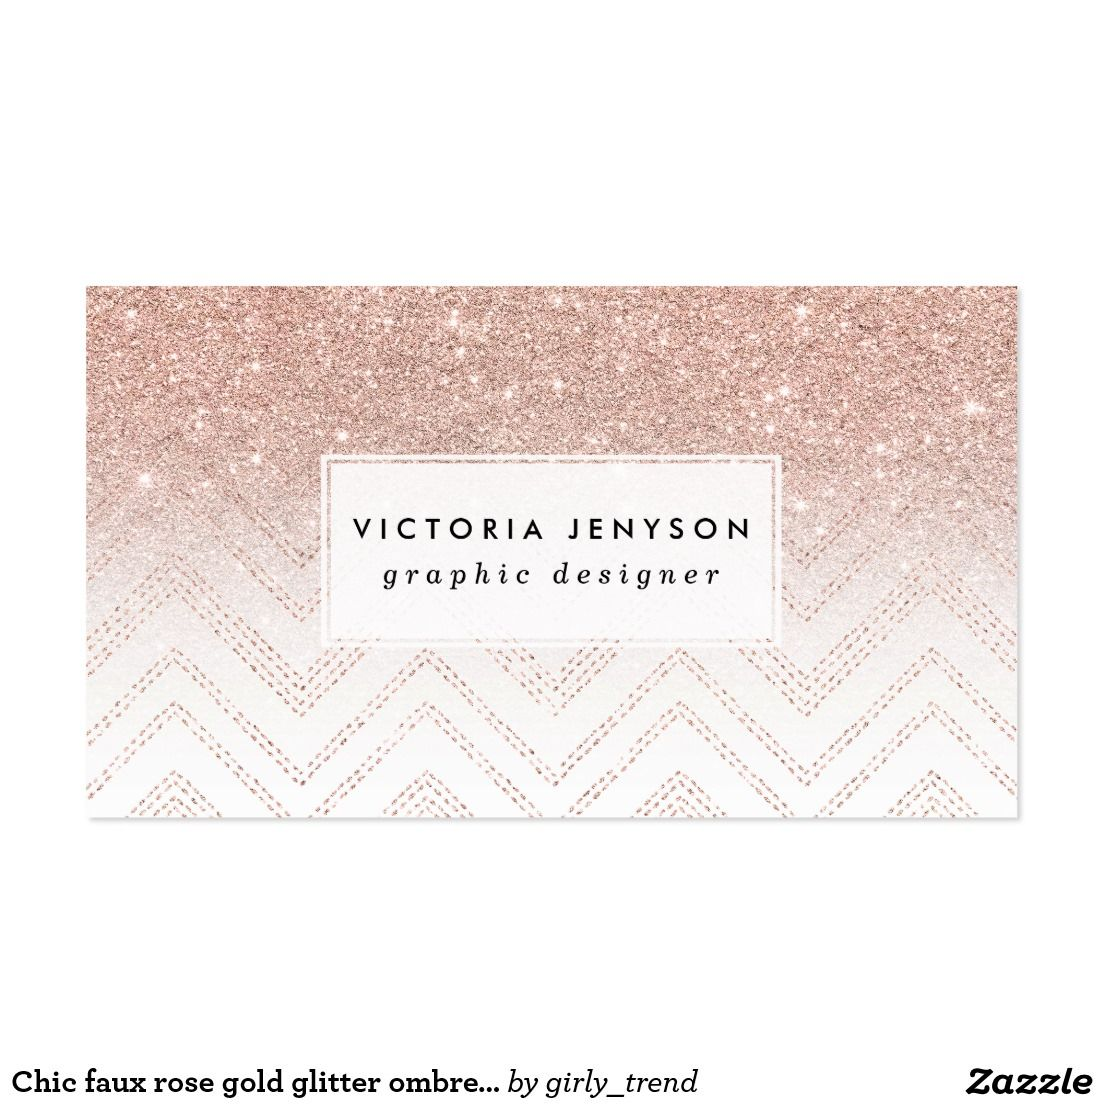 Chic faux rose gold glitter ombre modern chevron business card ...